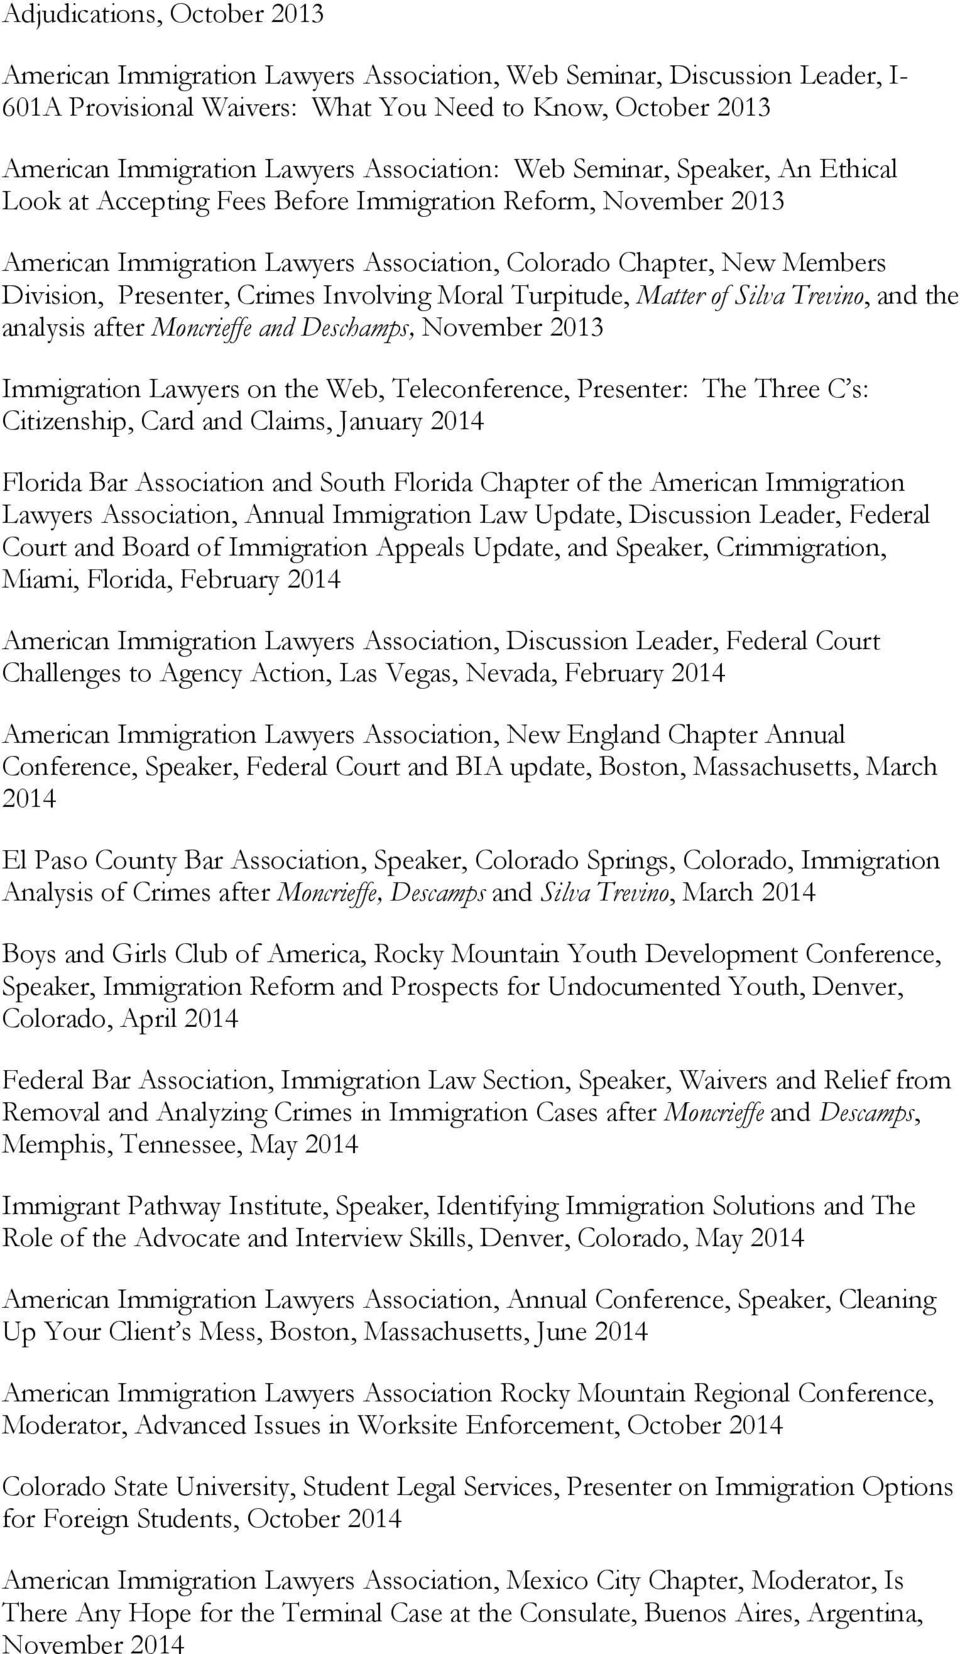 Presenter, Crimes Involving Moral Turpitude, Matter of Silva Trevino, and the analysis after Moncrieffe and Deschamps, November 2013 Immigration Lawyers on the Web, Teleconference, Presenter: The